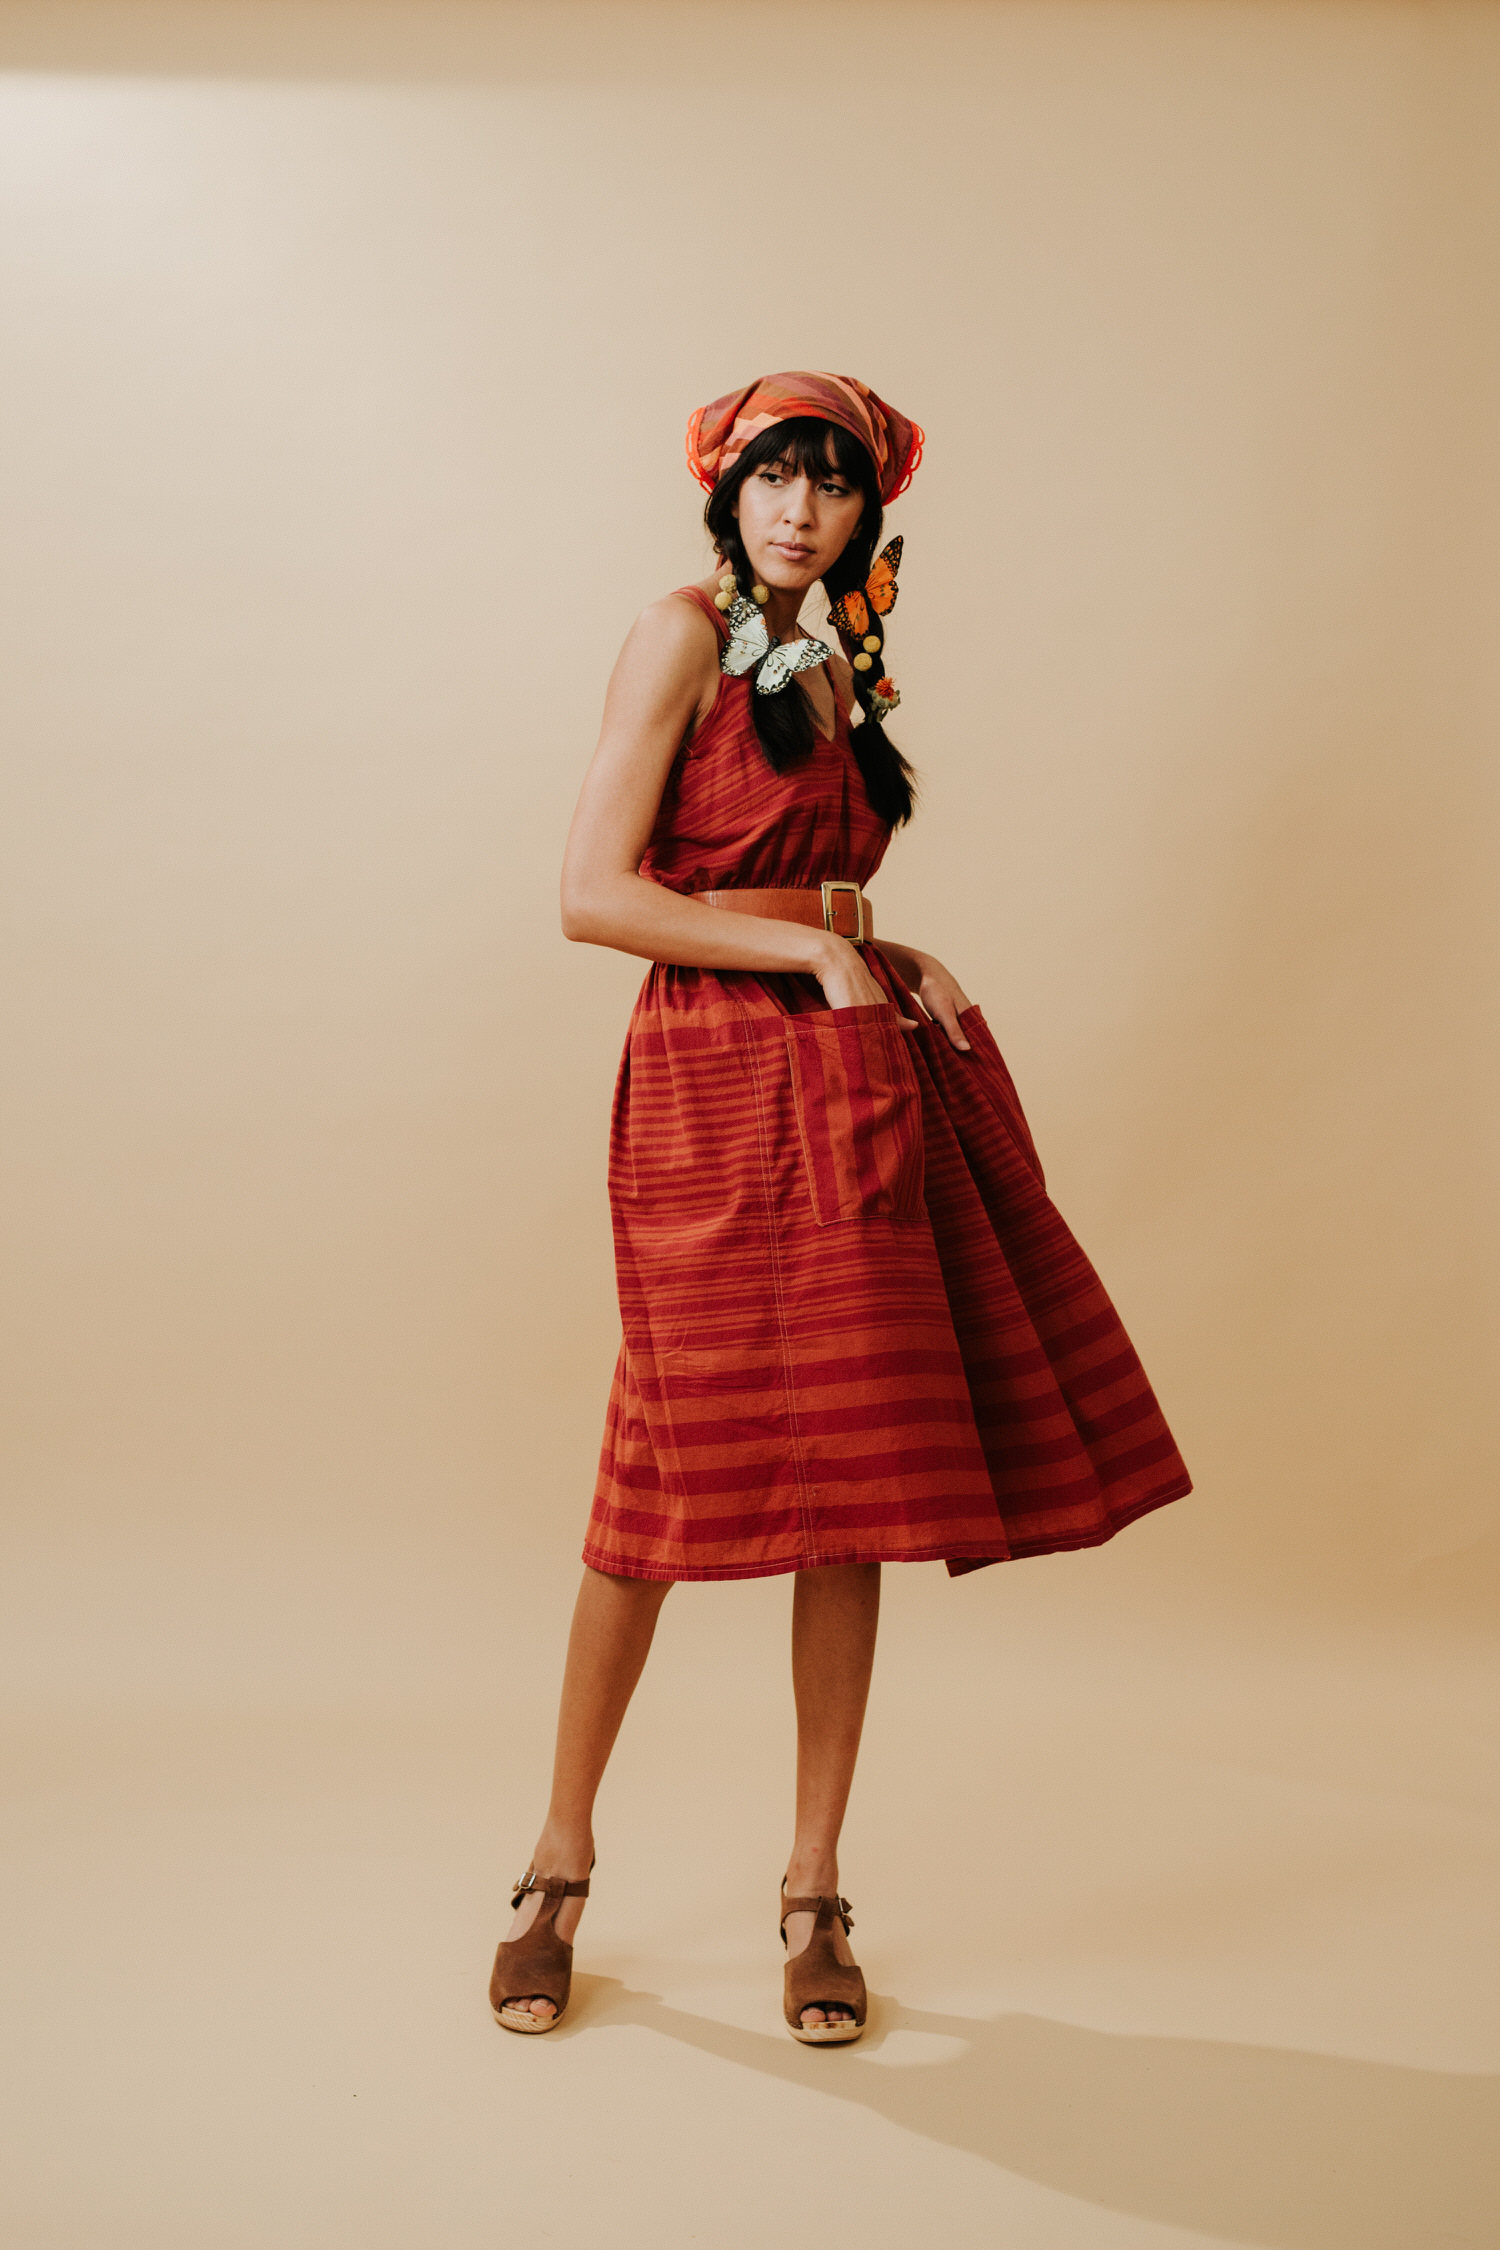 Woman in red vintage bandana and dress